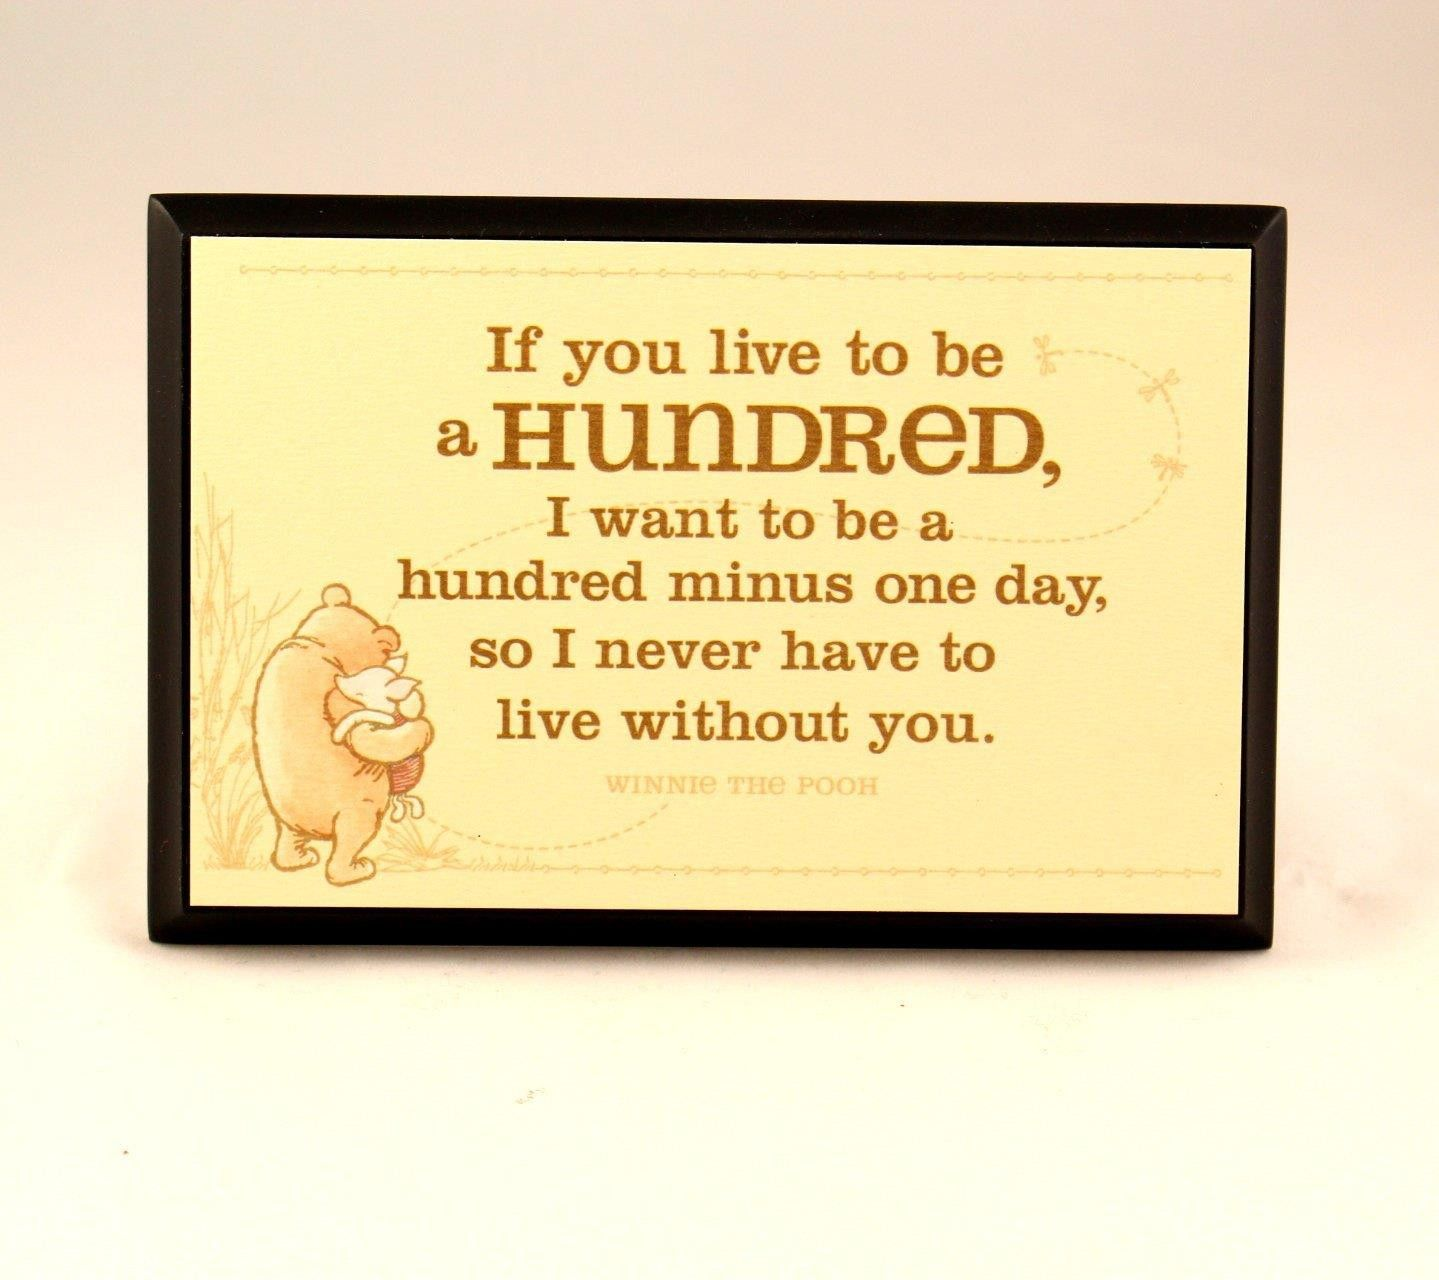 Winnie The Pooh And Piglet Quotes About Friendship If You Live To Be A Hundred  True Friends Piglets And Famous Quotes